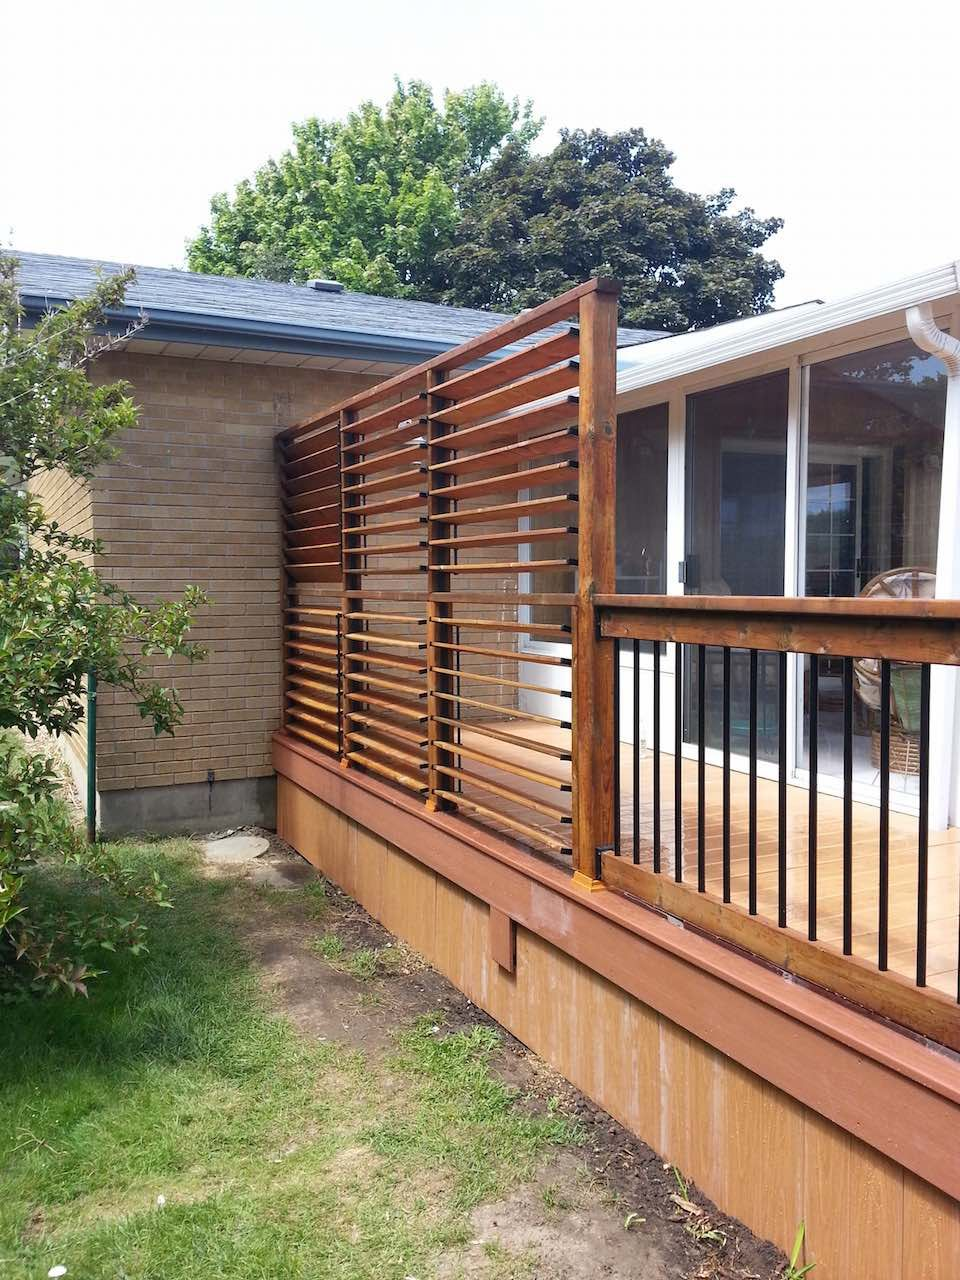 Backyard privacy screen louvers great solution by flex for Deck privacy screen panels